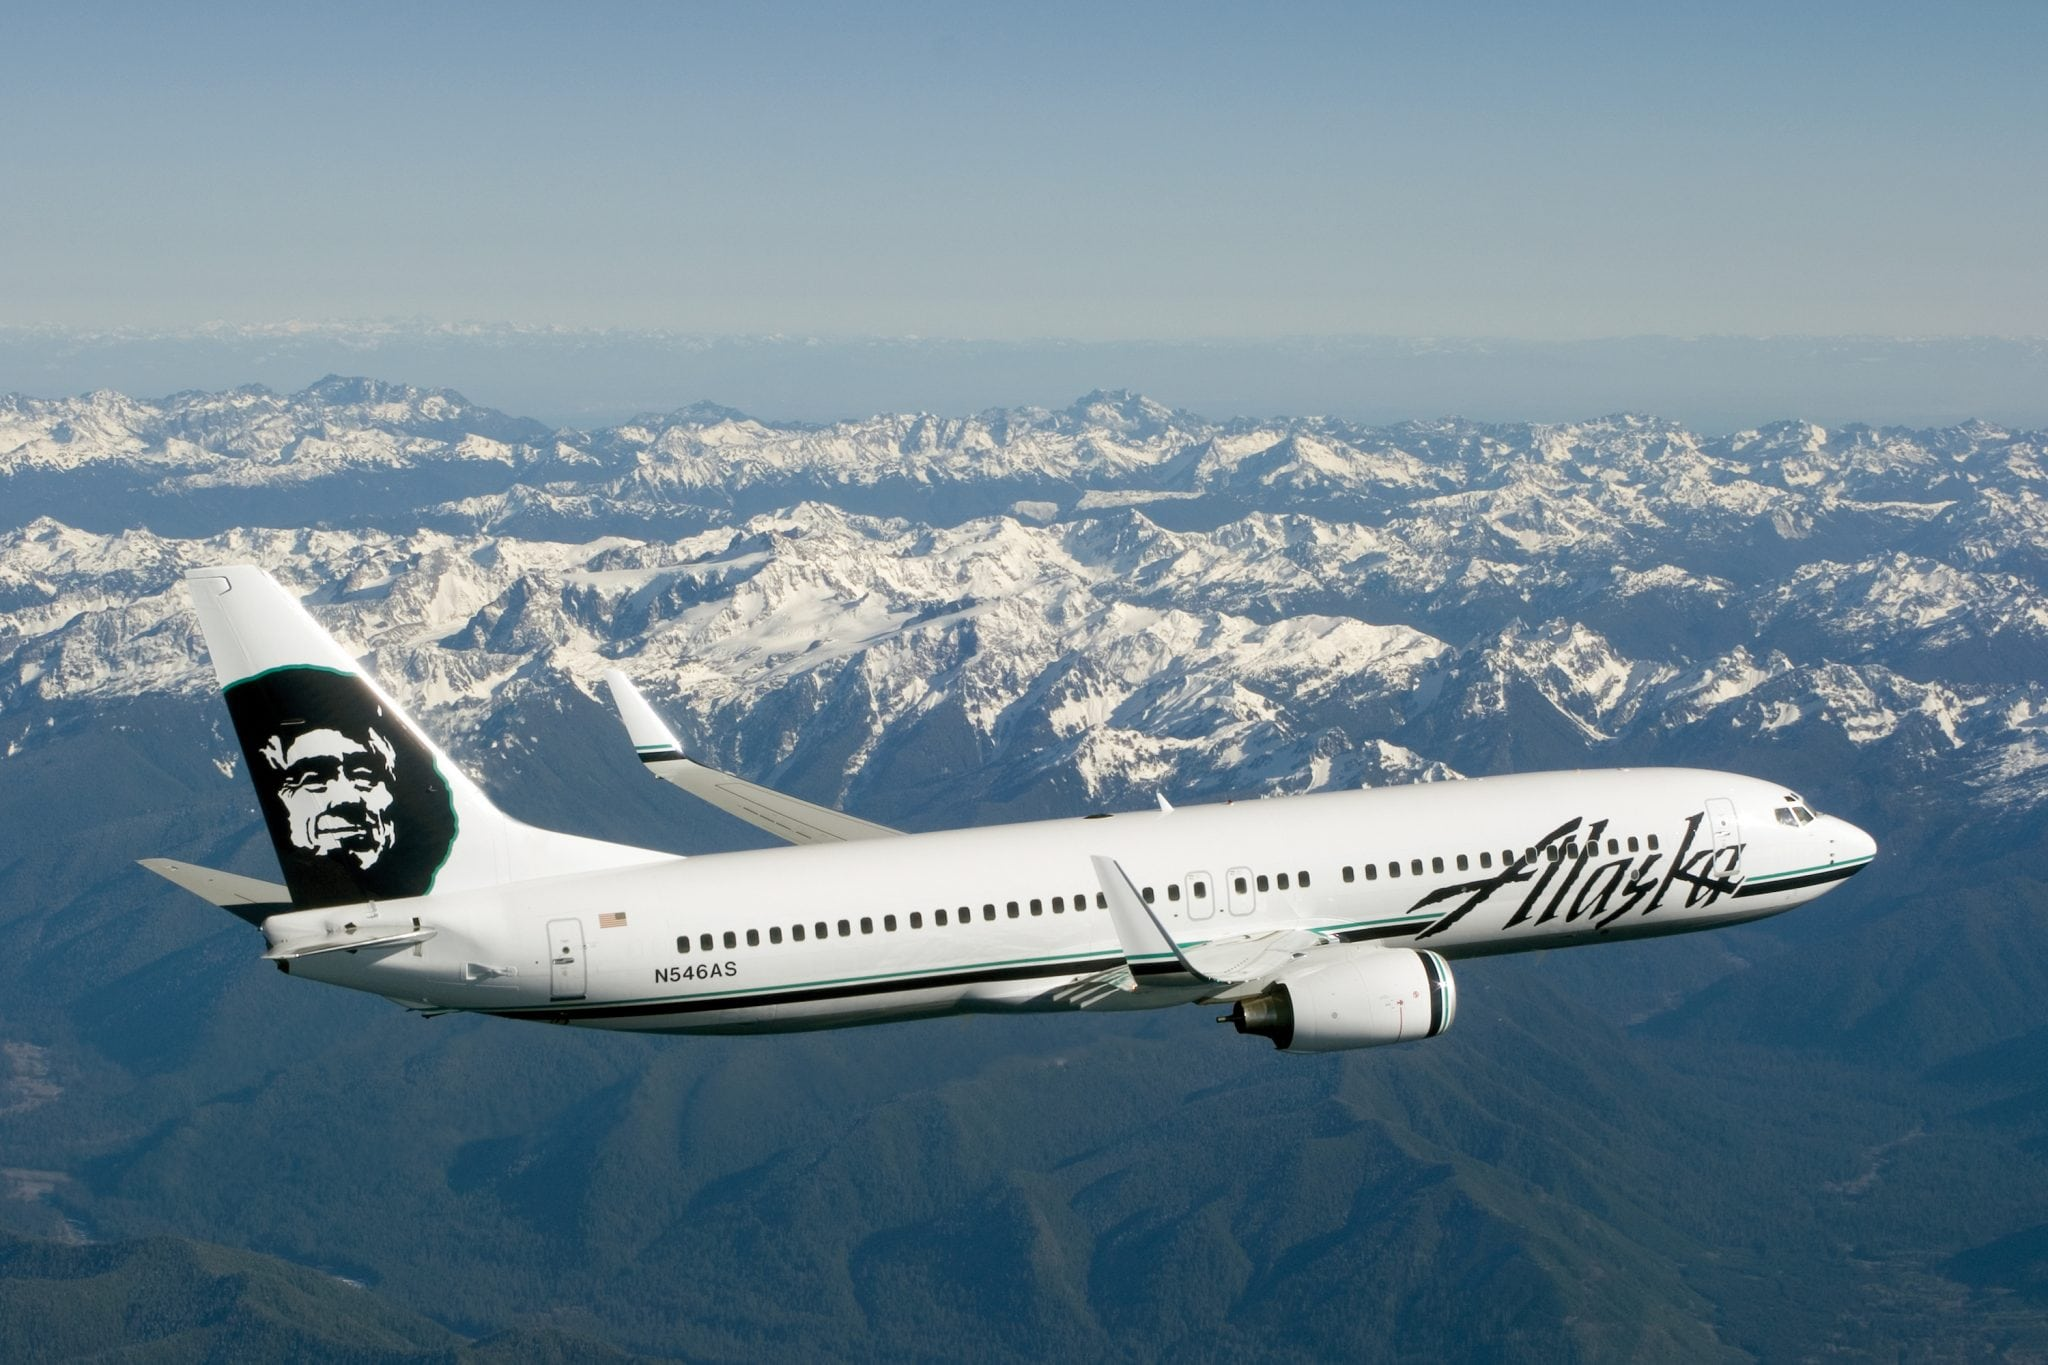 Alaska Airlines has seen an increase in yearly traffic